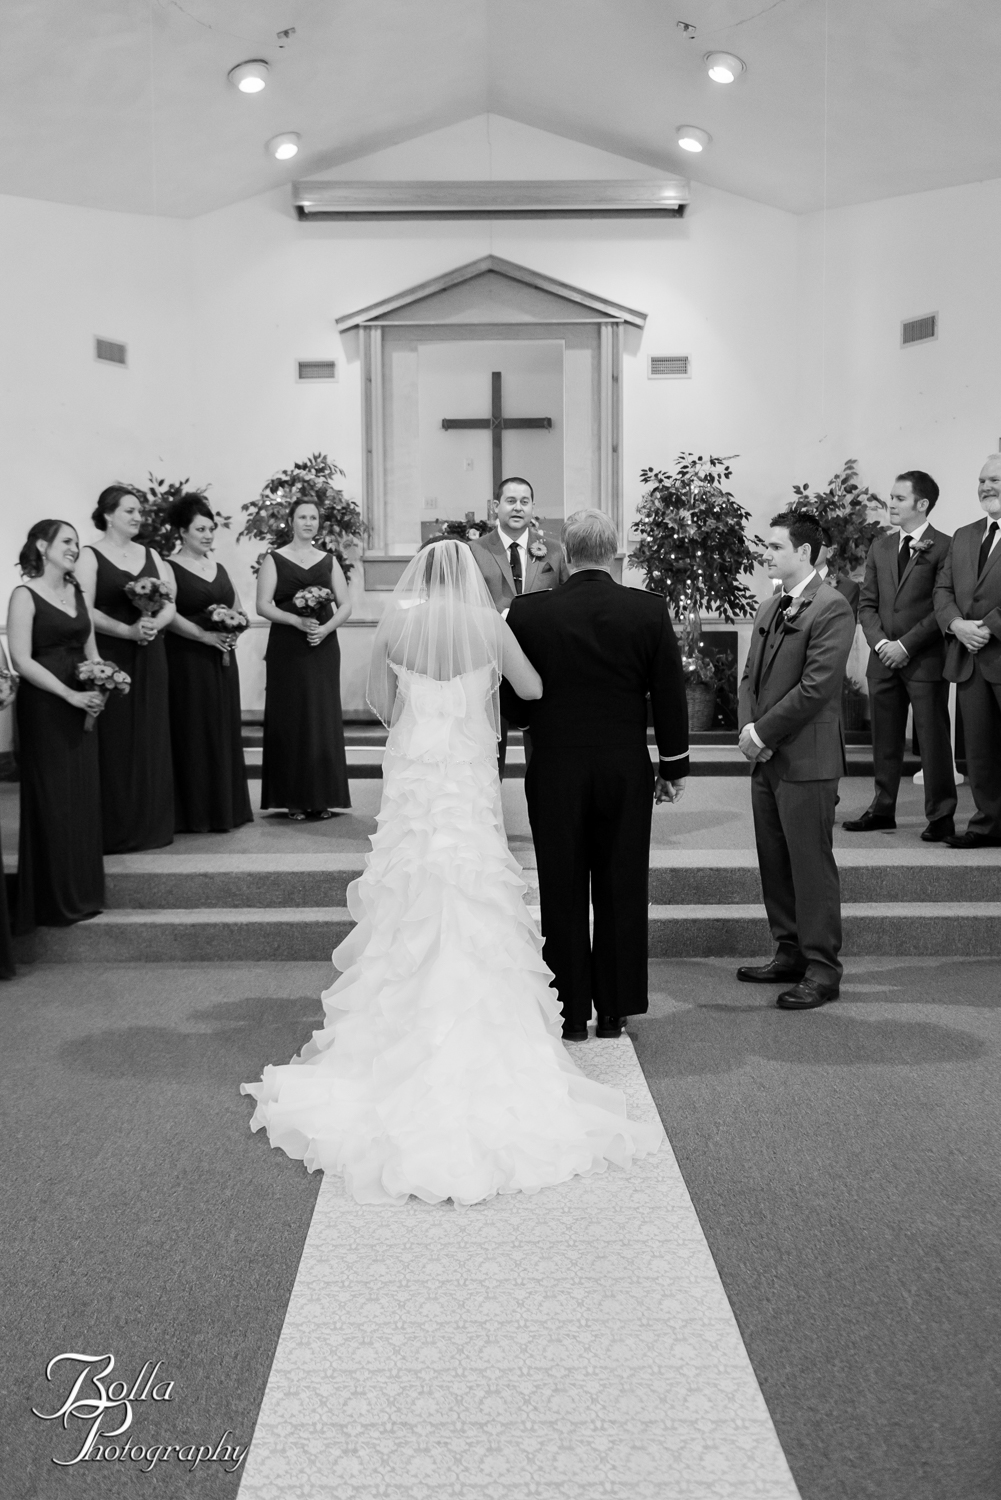 Bolla_Photography_St_Louis_wedding_photographer-0160.jpg